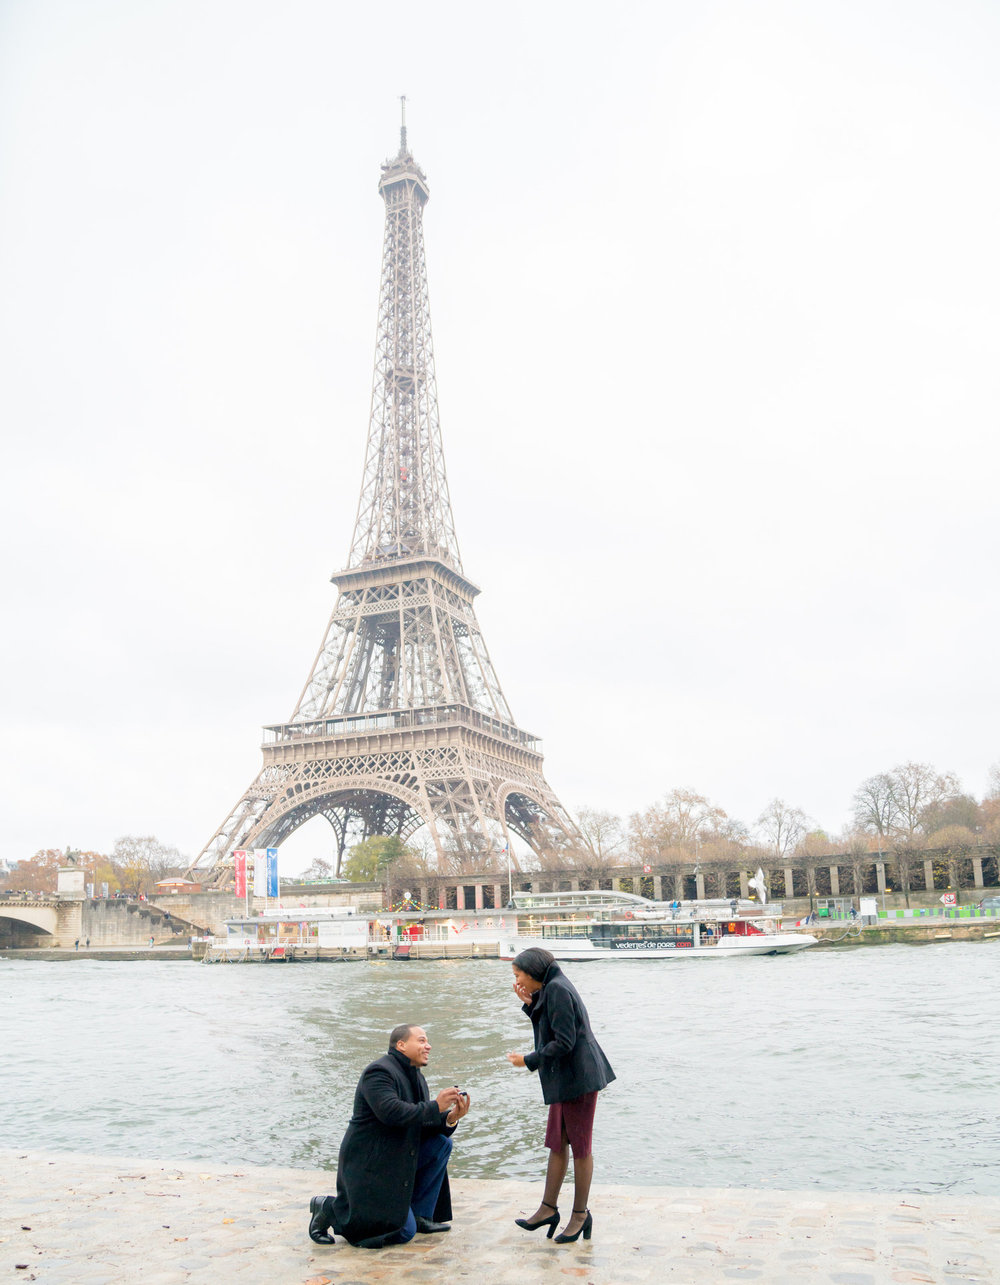 proposal+at+eiffel+tower+river+side.jpeg